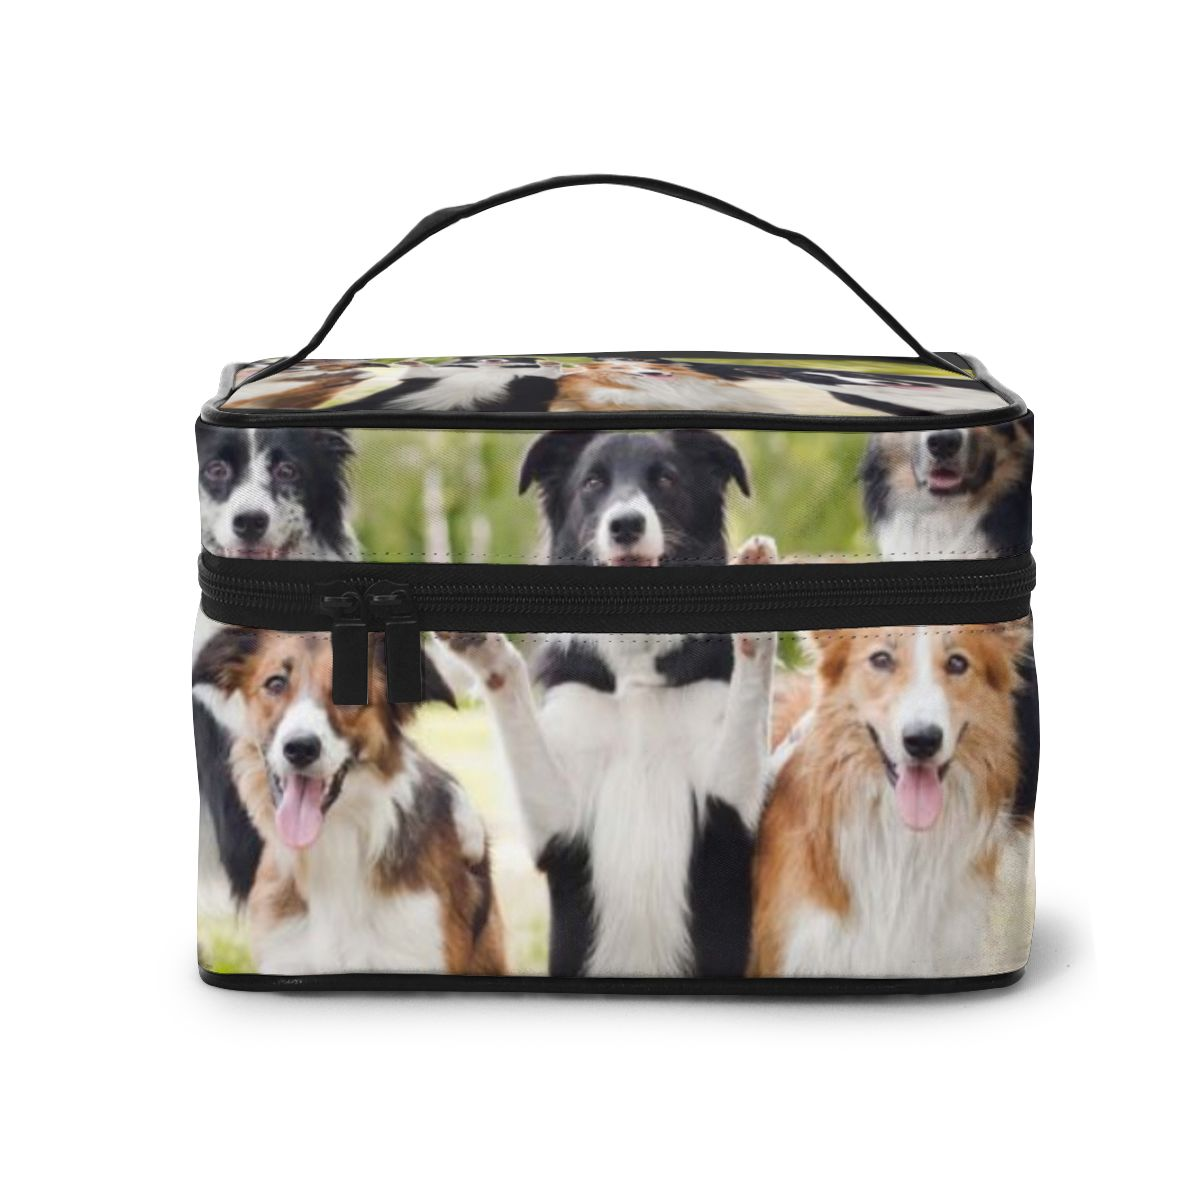 NOISYDESIGNS New Fashion Women Make Up Bags Travel Organizer Cosmetic Bag Cases Border Collie Toiletry Kit Pouch Beauty Bag